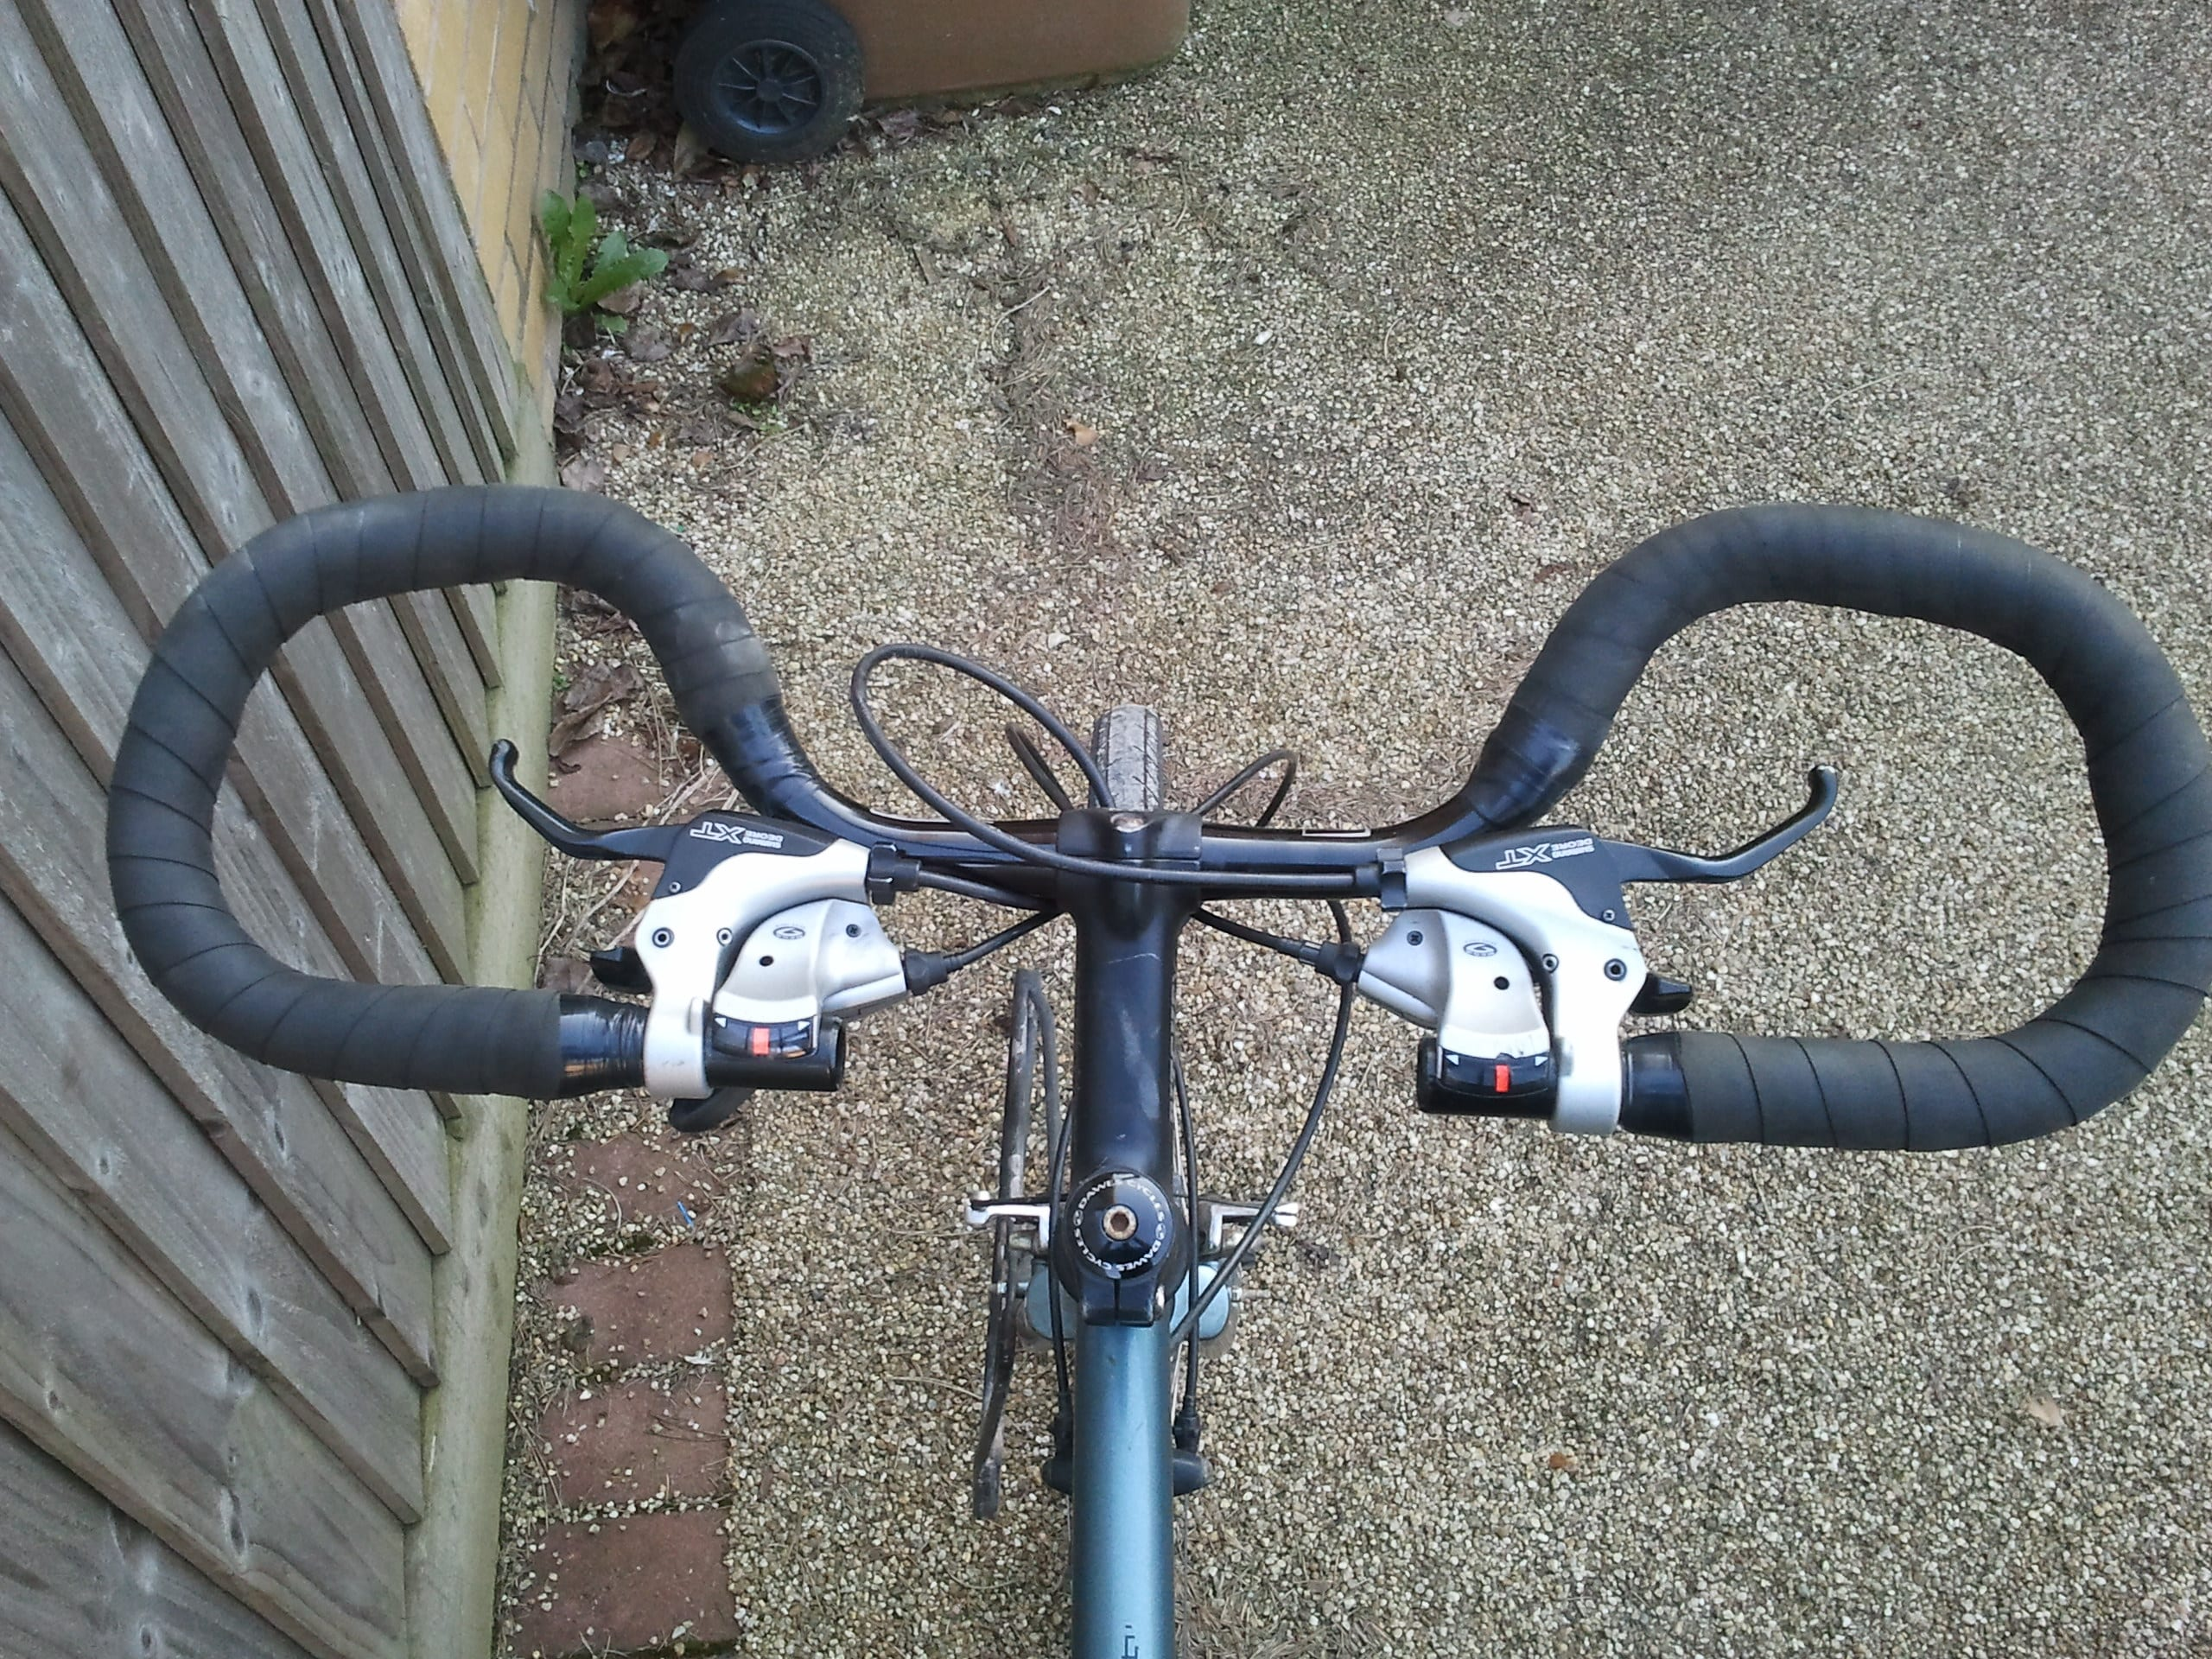 Butterfly handlebars for bicycle touring. Butterfly handlebars are also known as trekking bars.